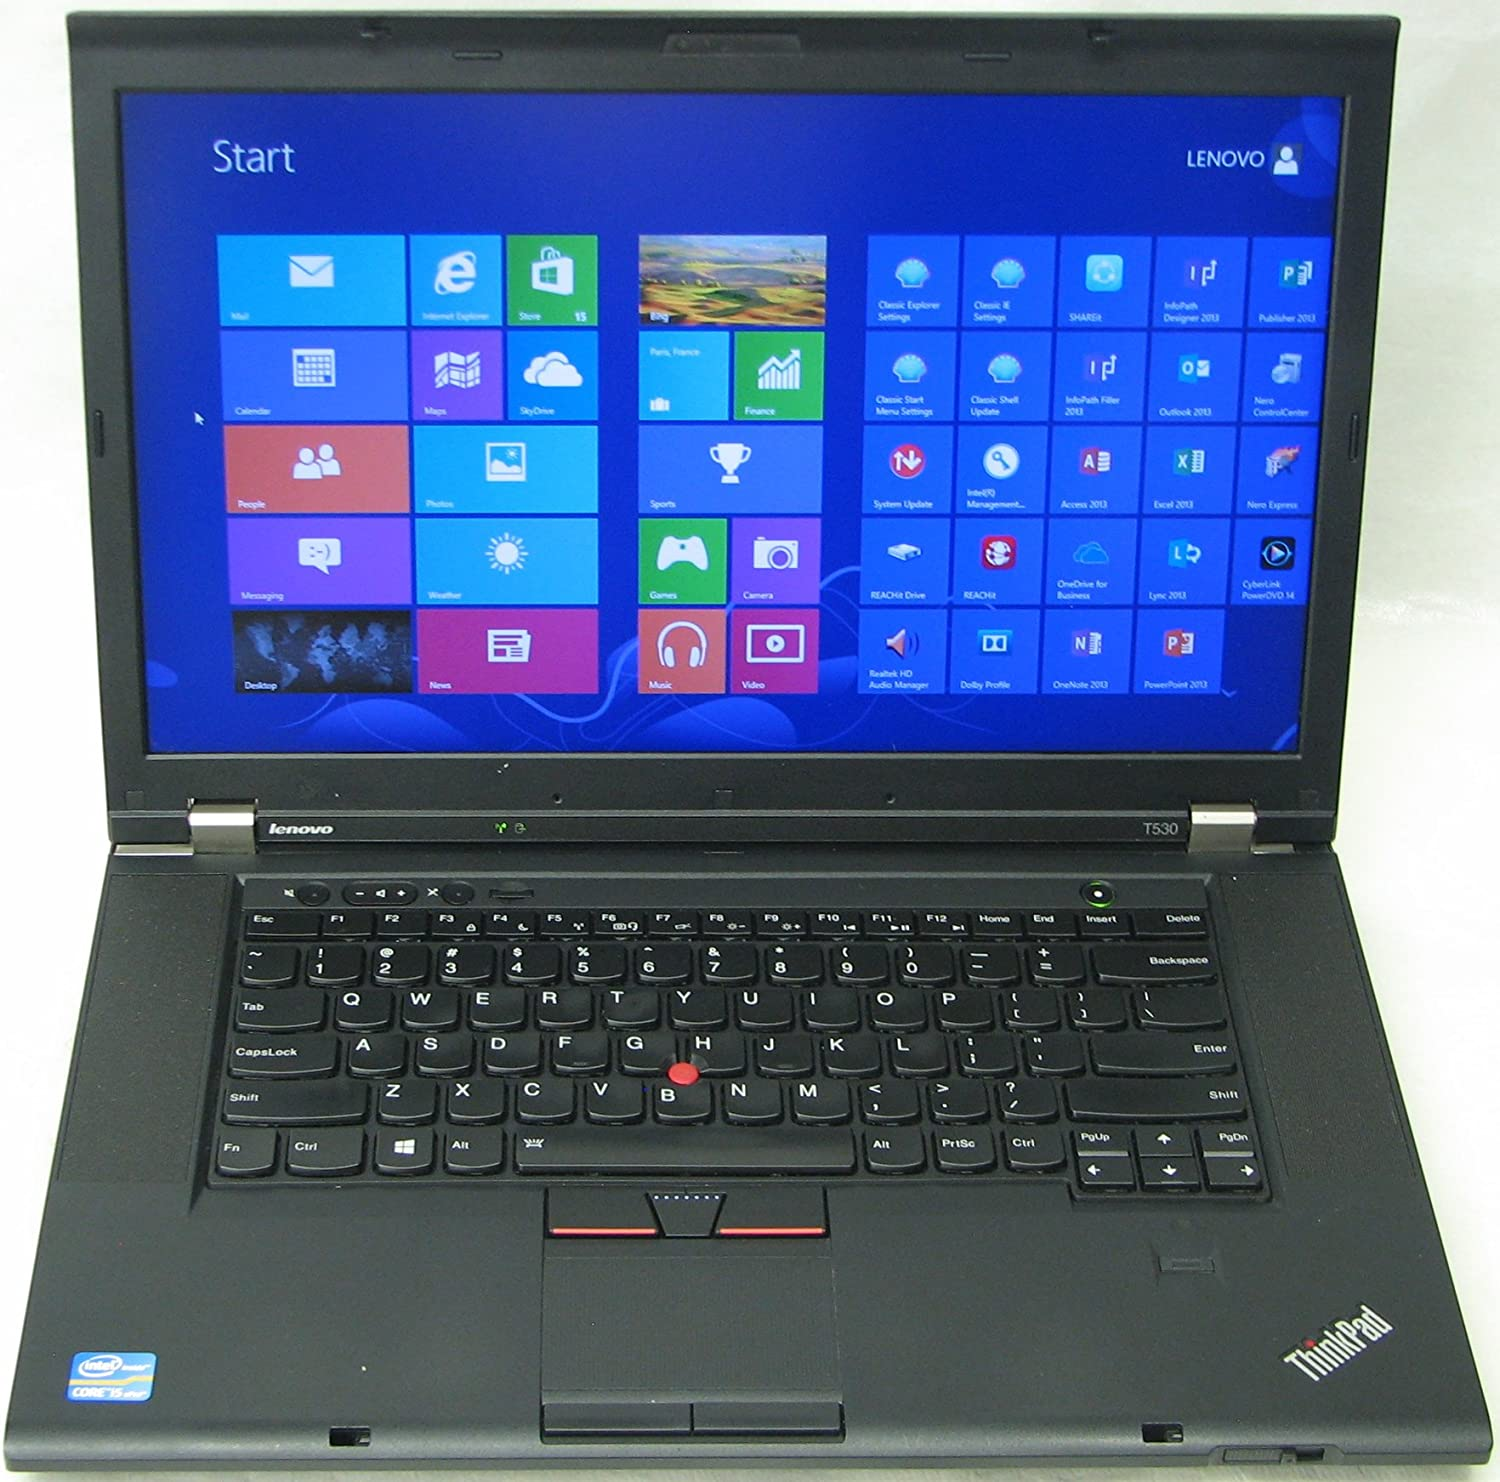 "Lenovo Thinkpad 15.6"" Laptop with Intel Core i7-3720QM Quad-Core Processor, 16GB RAM, and 500GB Hard Drive"